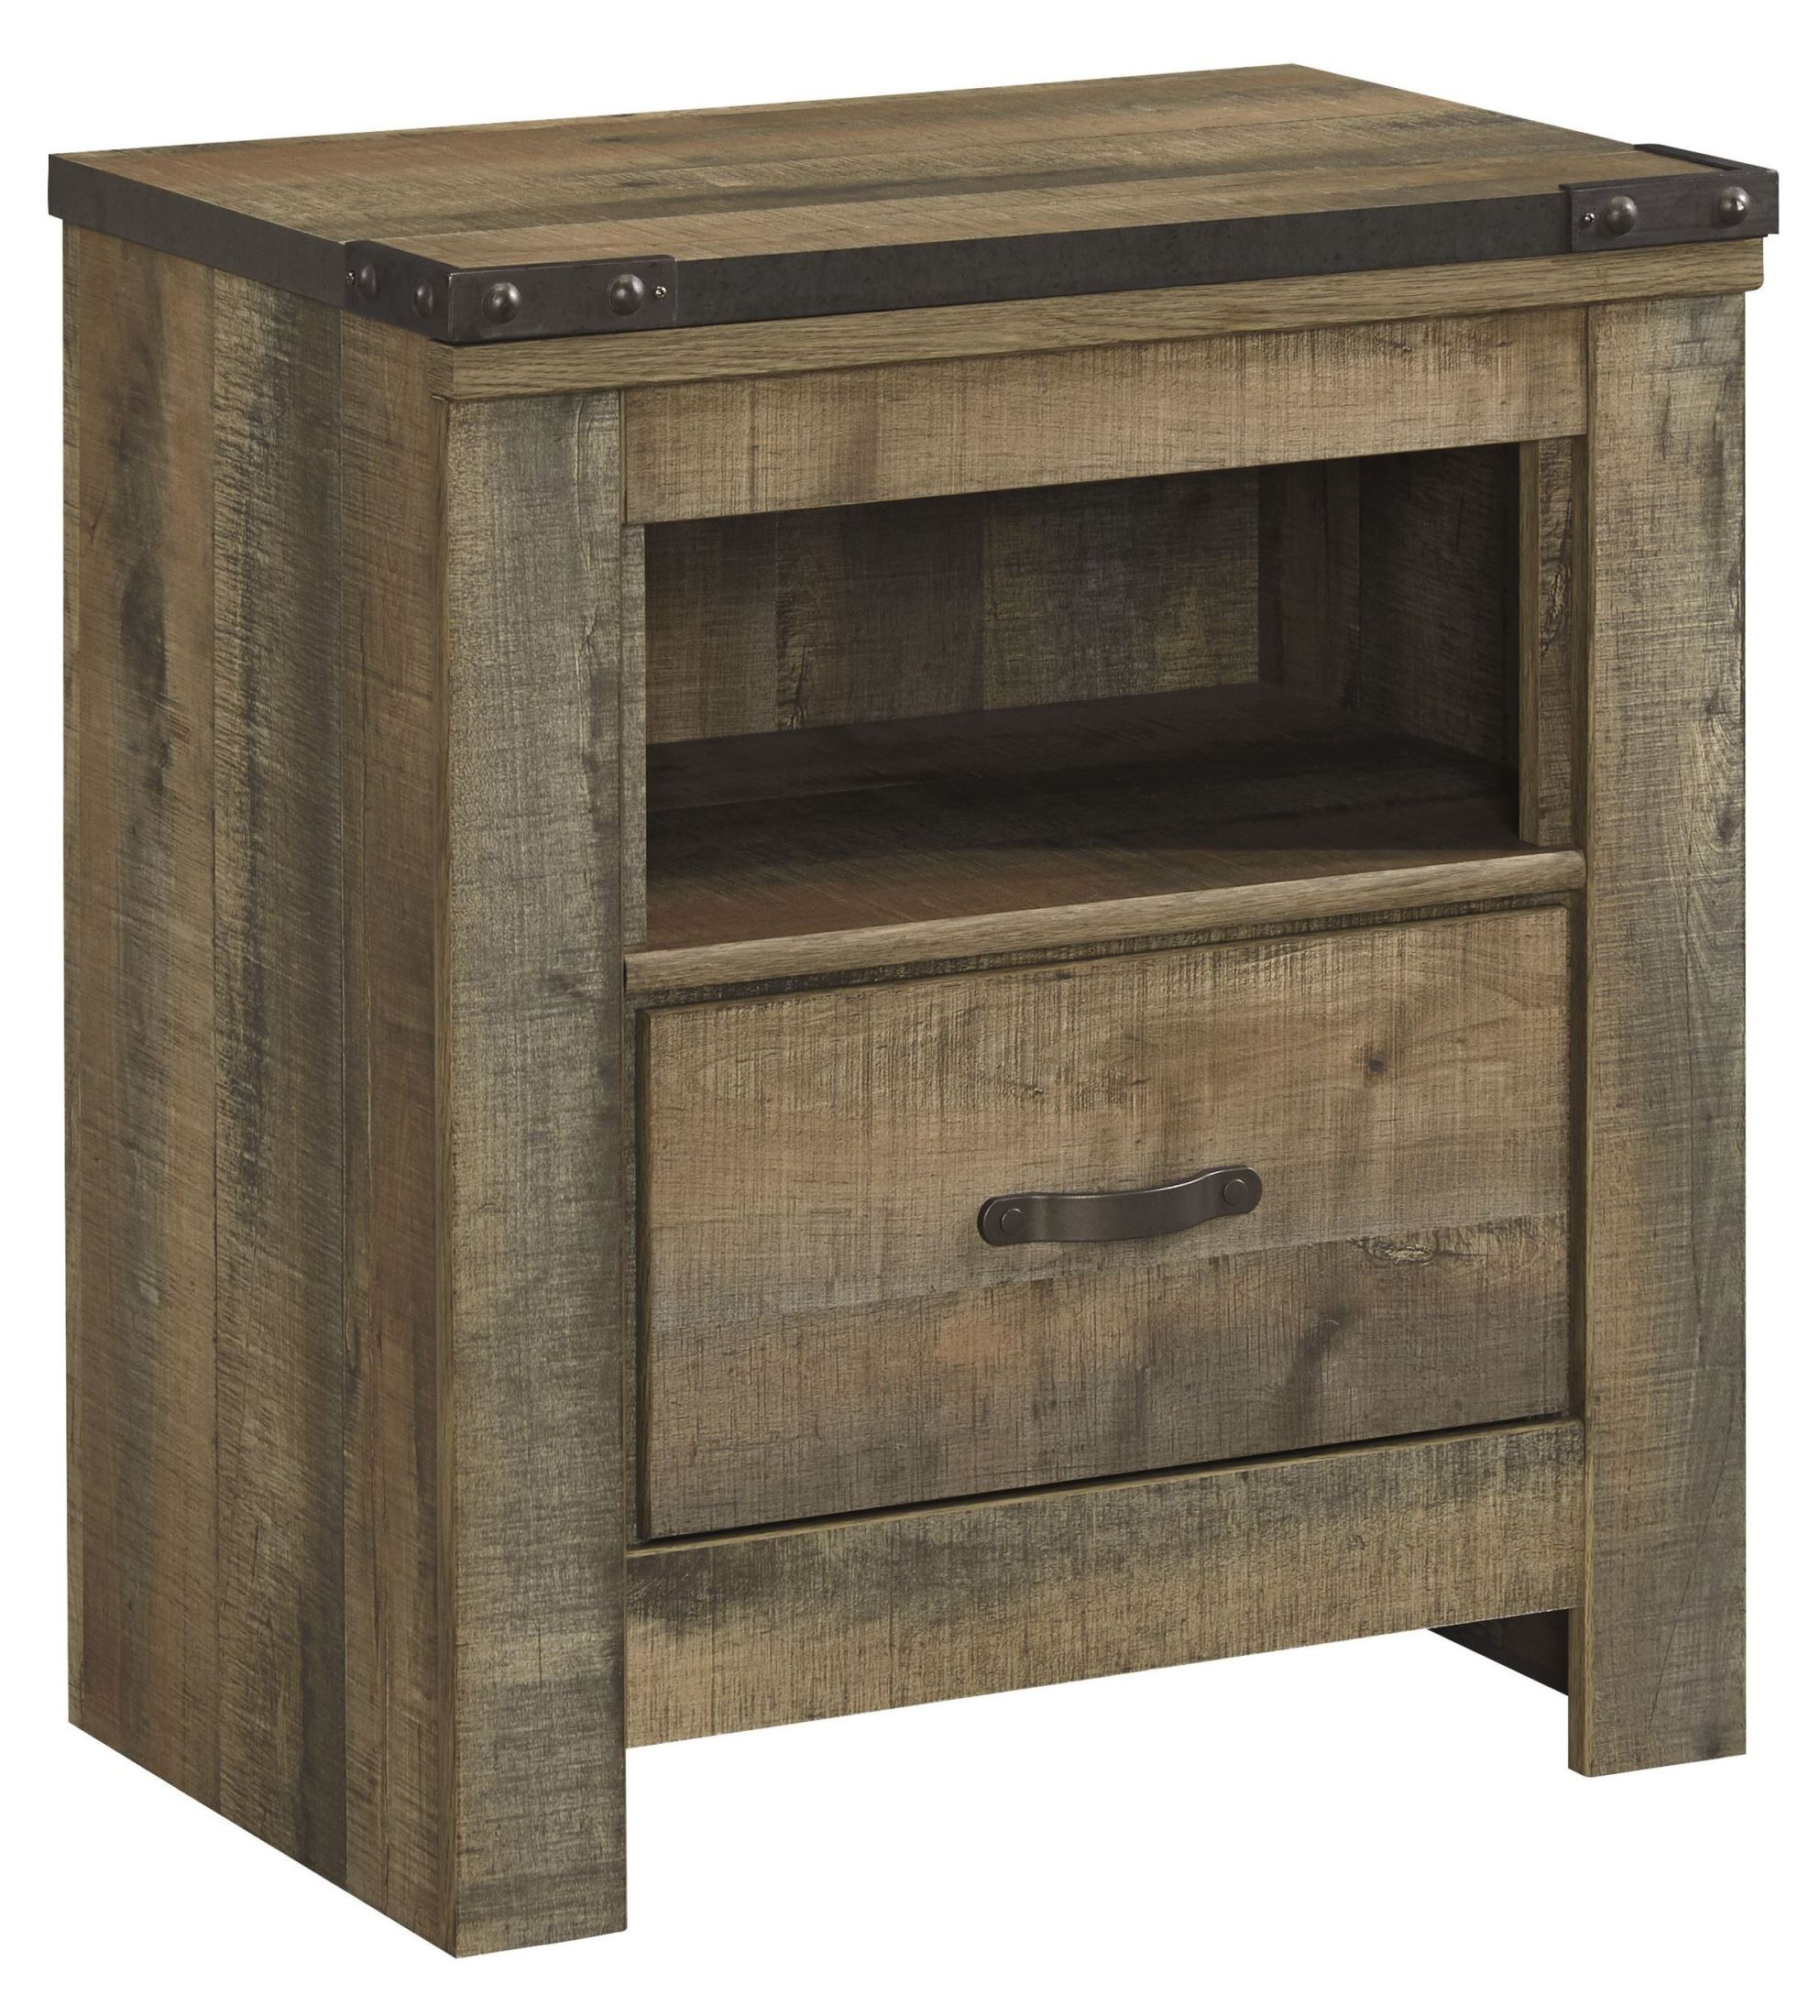 trinell brown one drawer night stand from ashley b446 91 coleman furniture. Black Bedroom Furniture Sets. Home Design Ideas